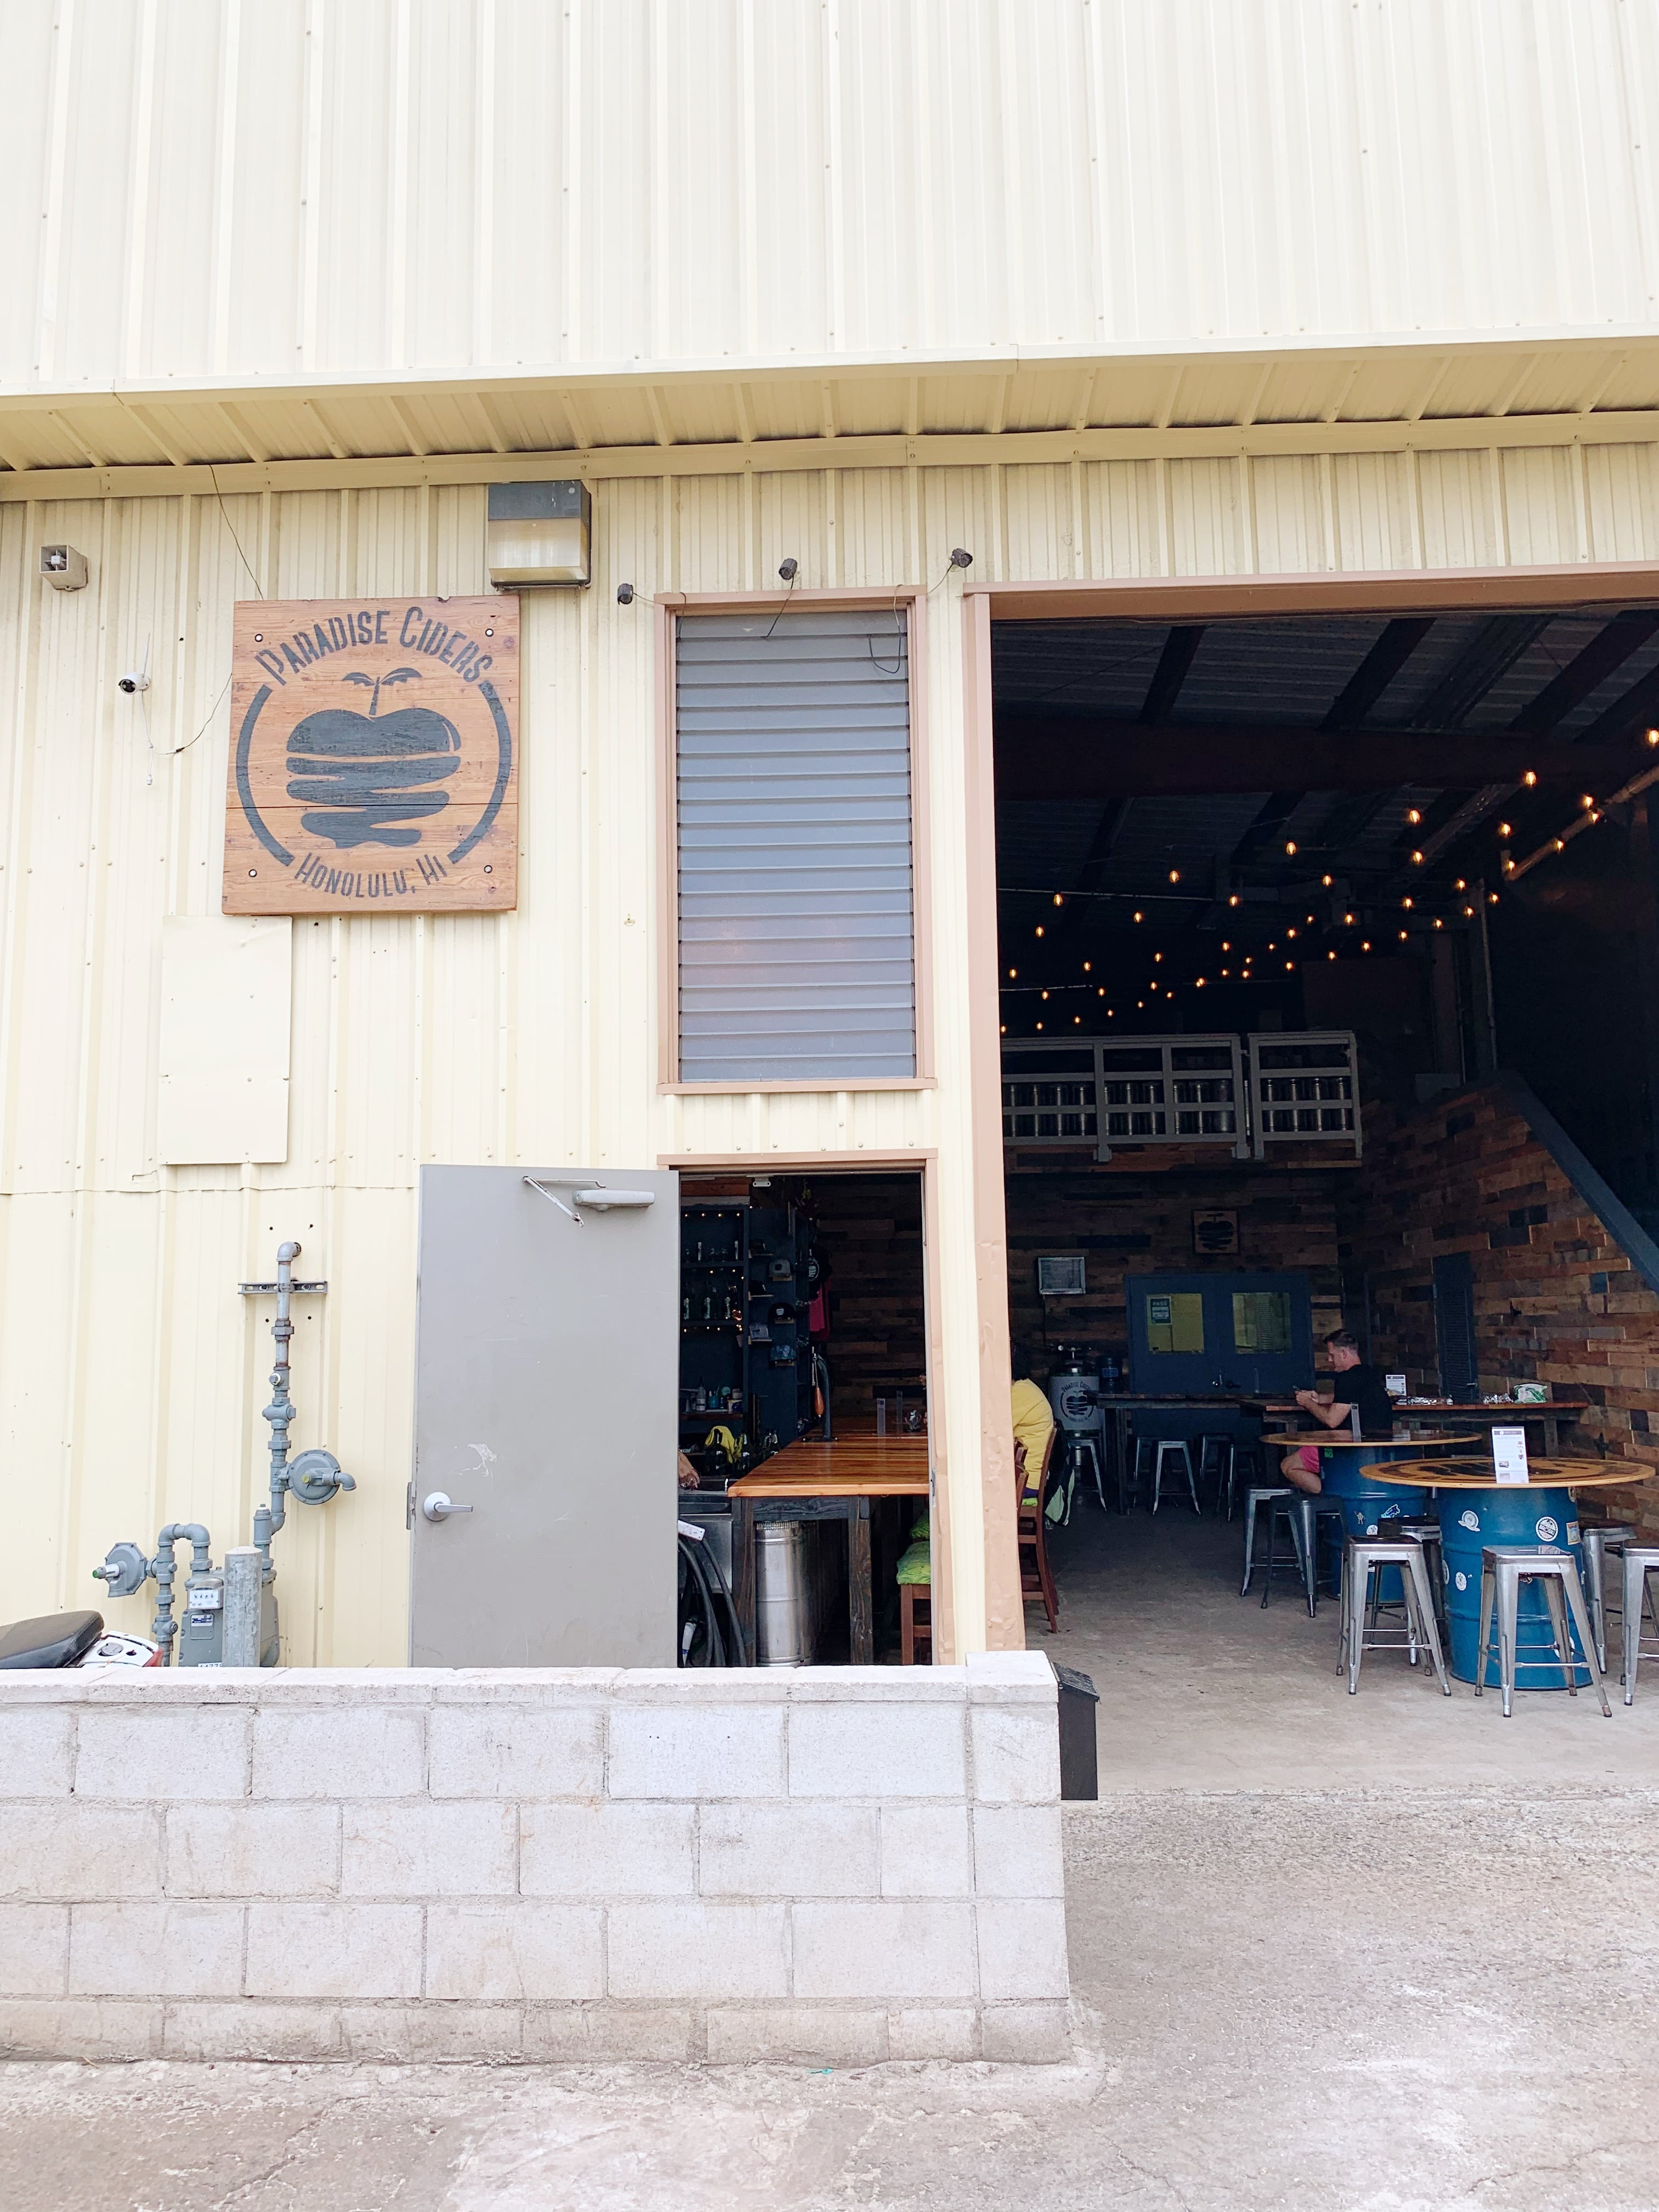 Visiting Paradise Ciders - Hawaii's First Cider Company - Oahu Hawaii Cider - Breweries and Distilleries in Hawaii - Hard Cider Hawaii - What to do on Oahu